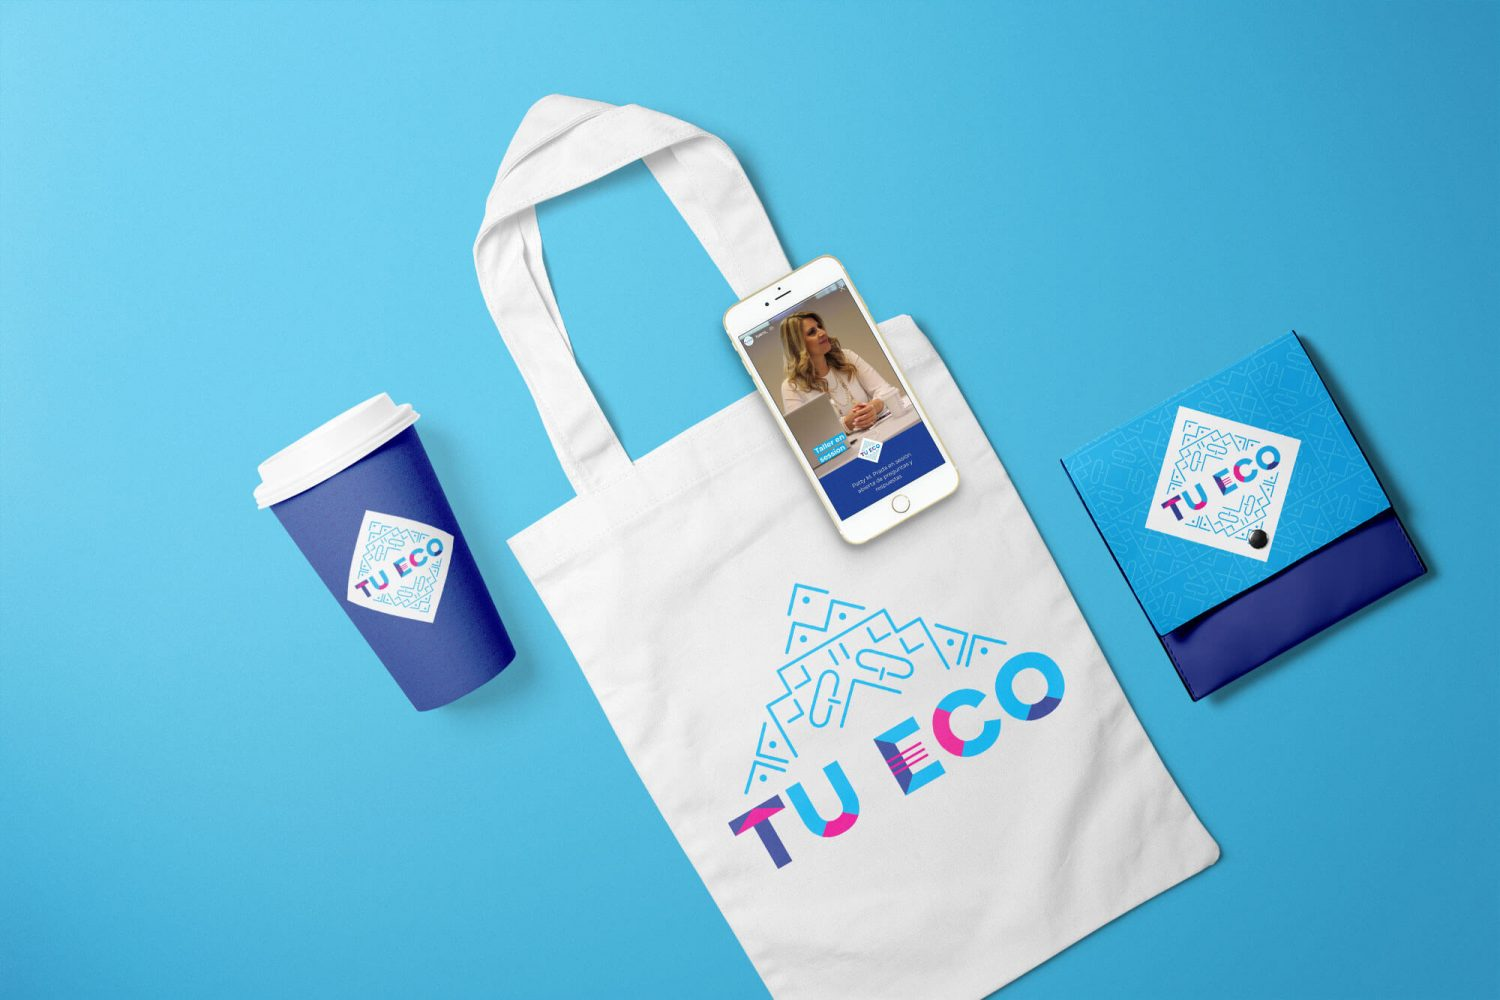 Tu Eco brand identity design with tote bag